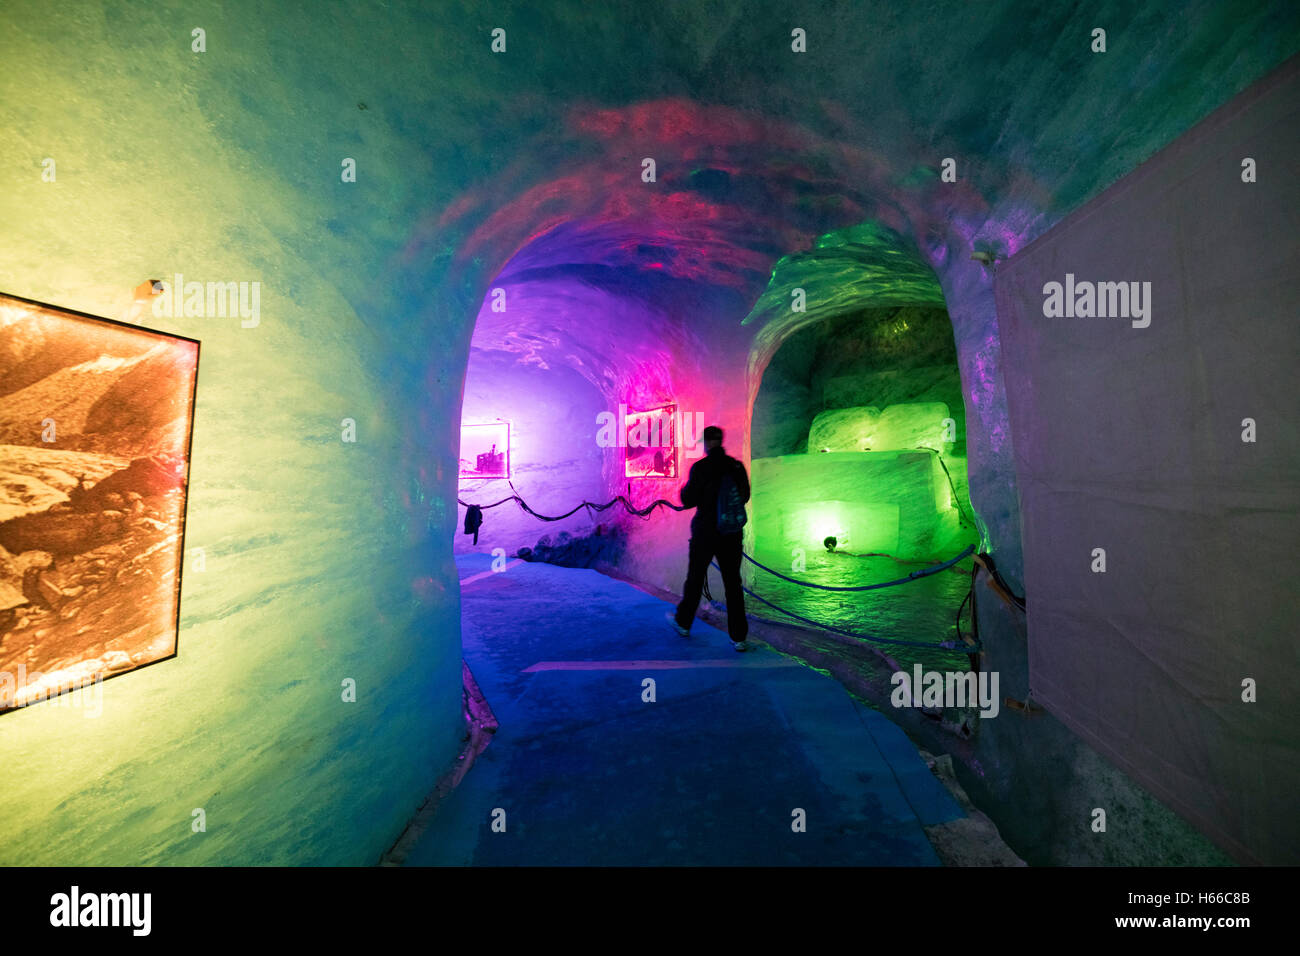 Illuminated ice cave inside Mer de Glace glacier, Montenvers. Chamonix Valley, French Alps, France. - Stock Image